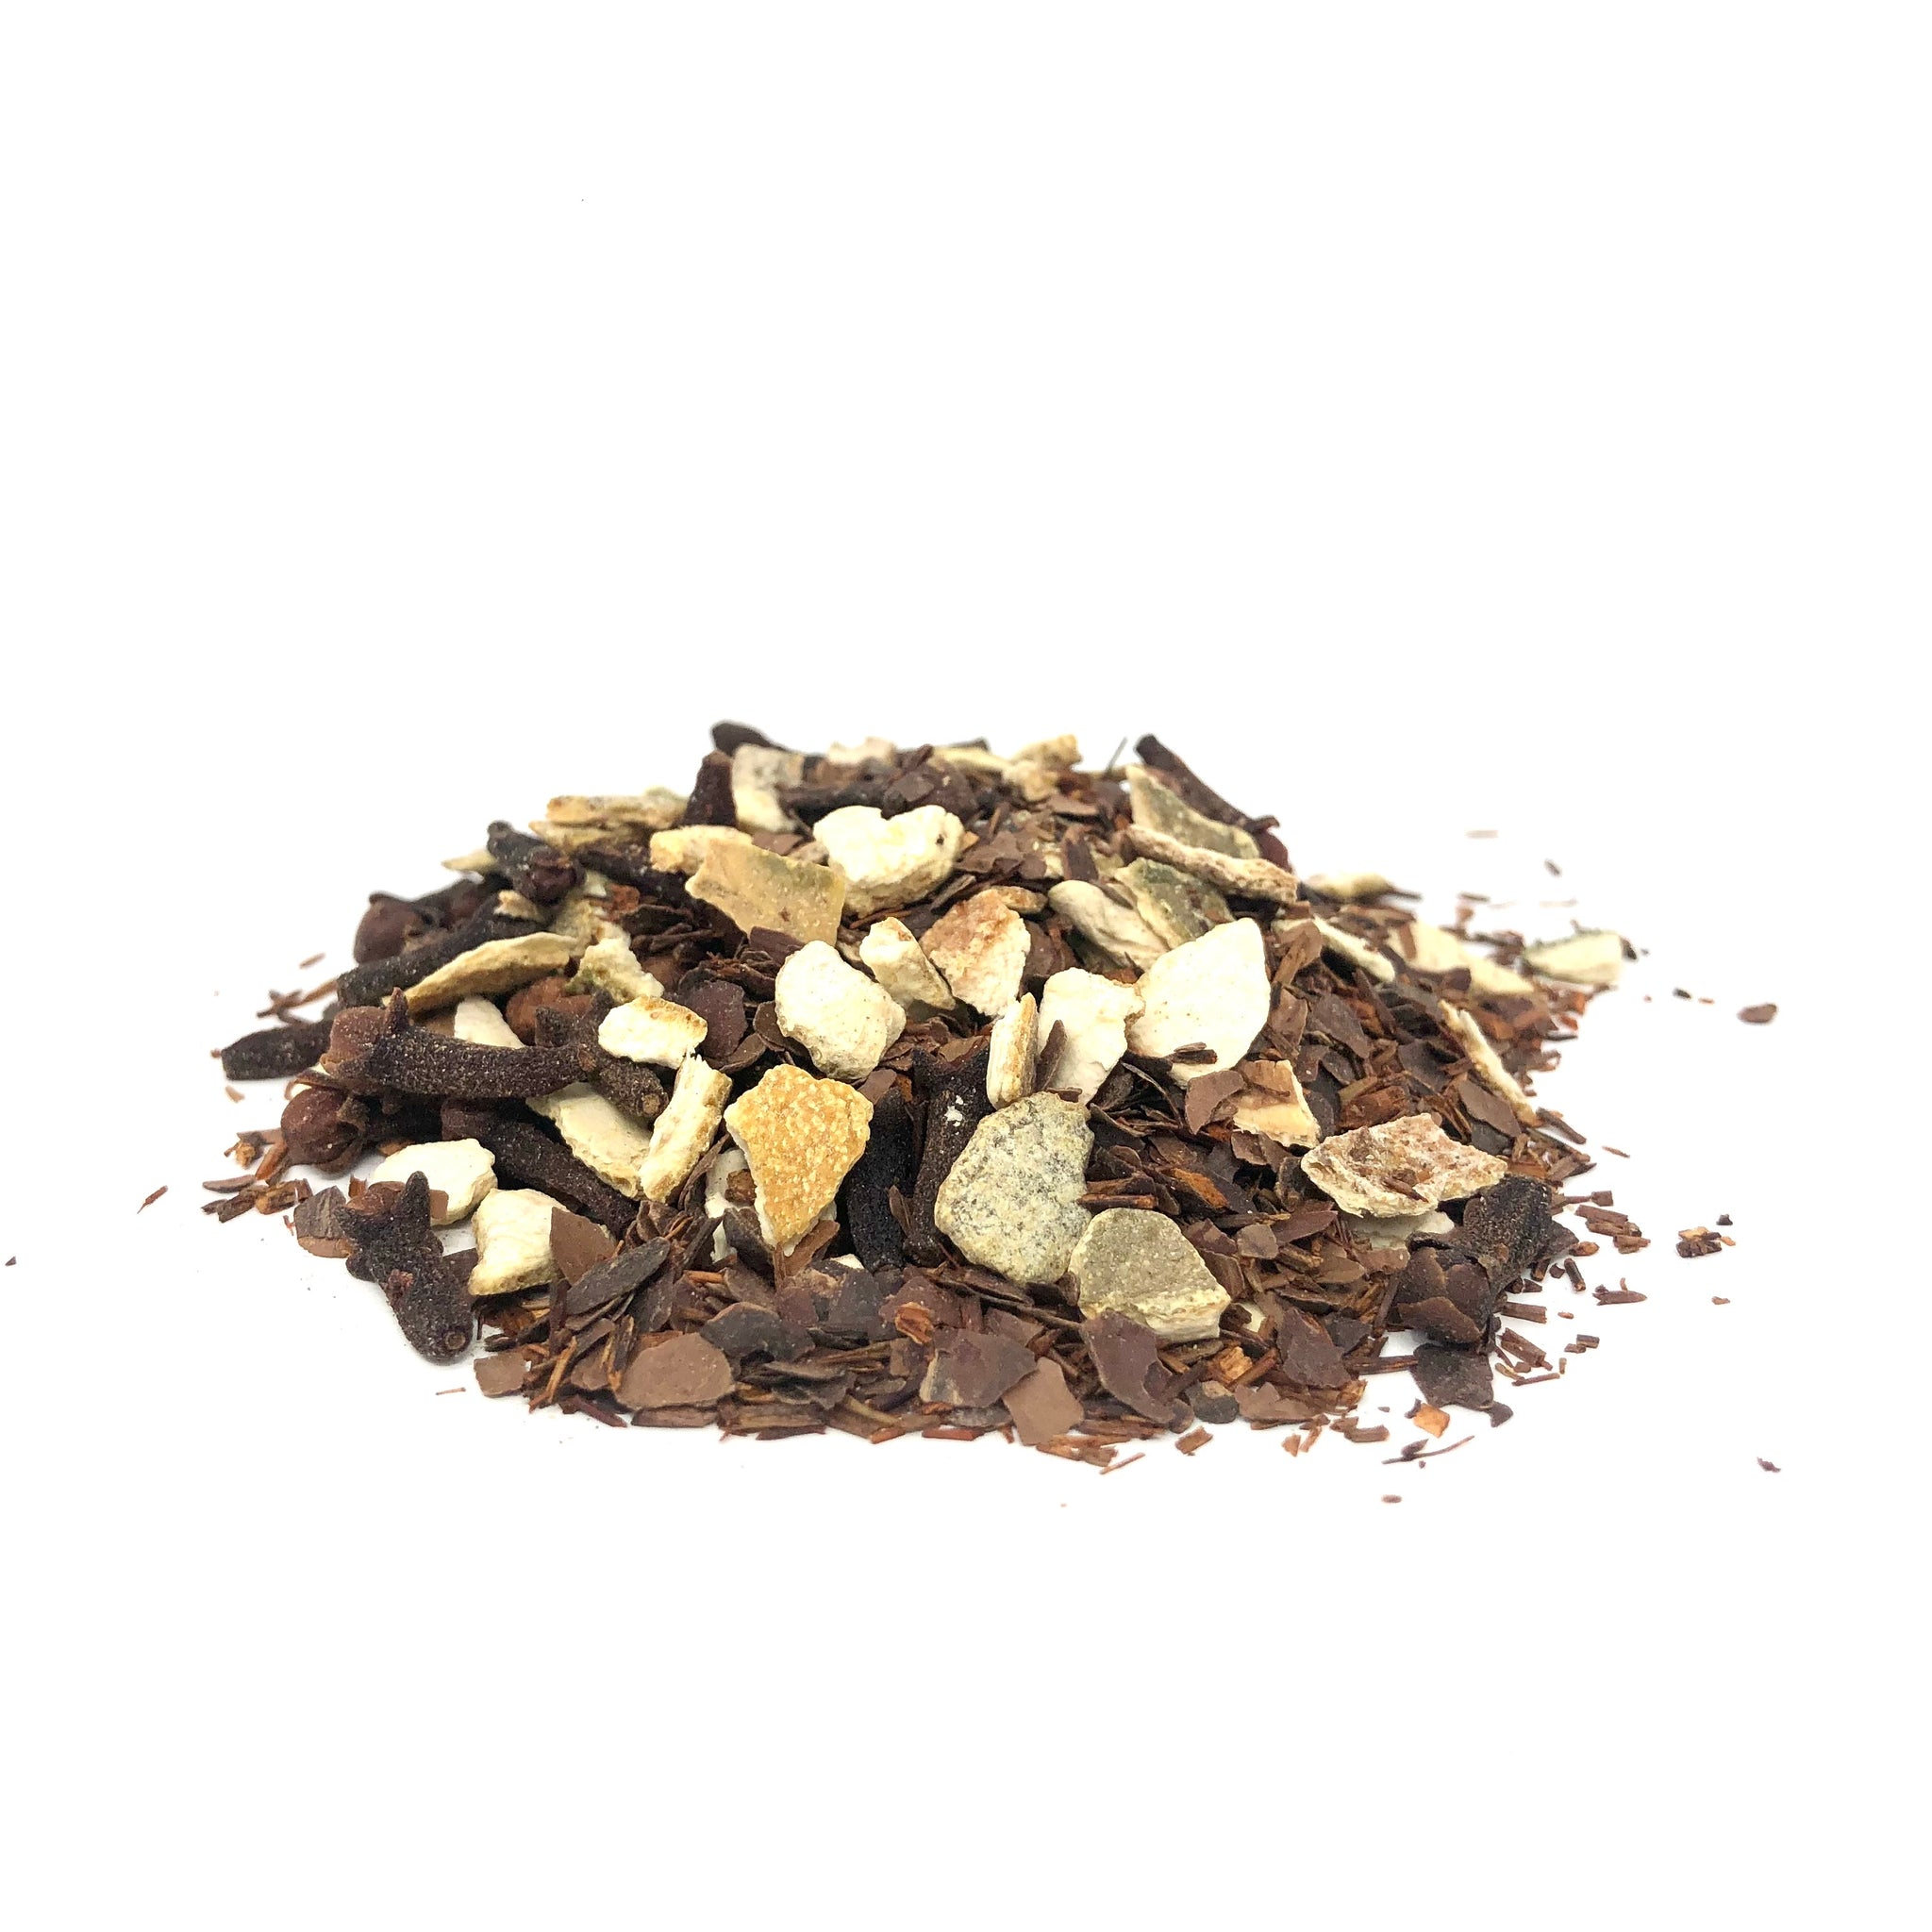 Spicy Chocolate Orange (Rooibos Tea Blend)